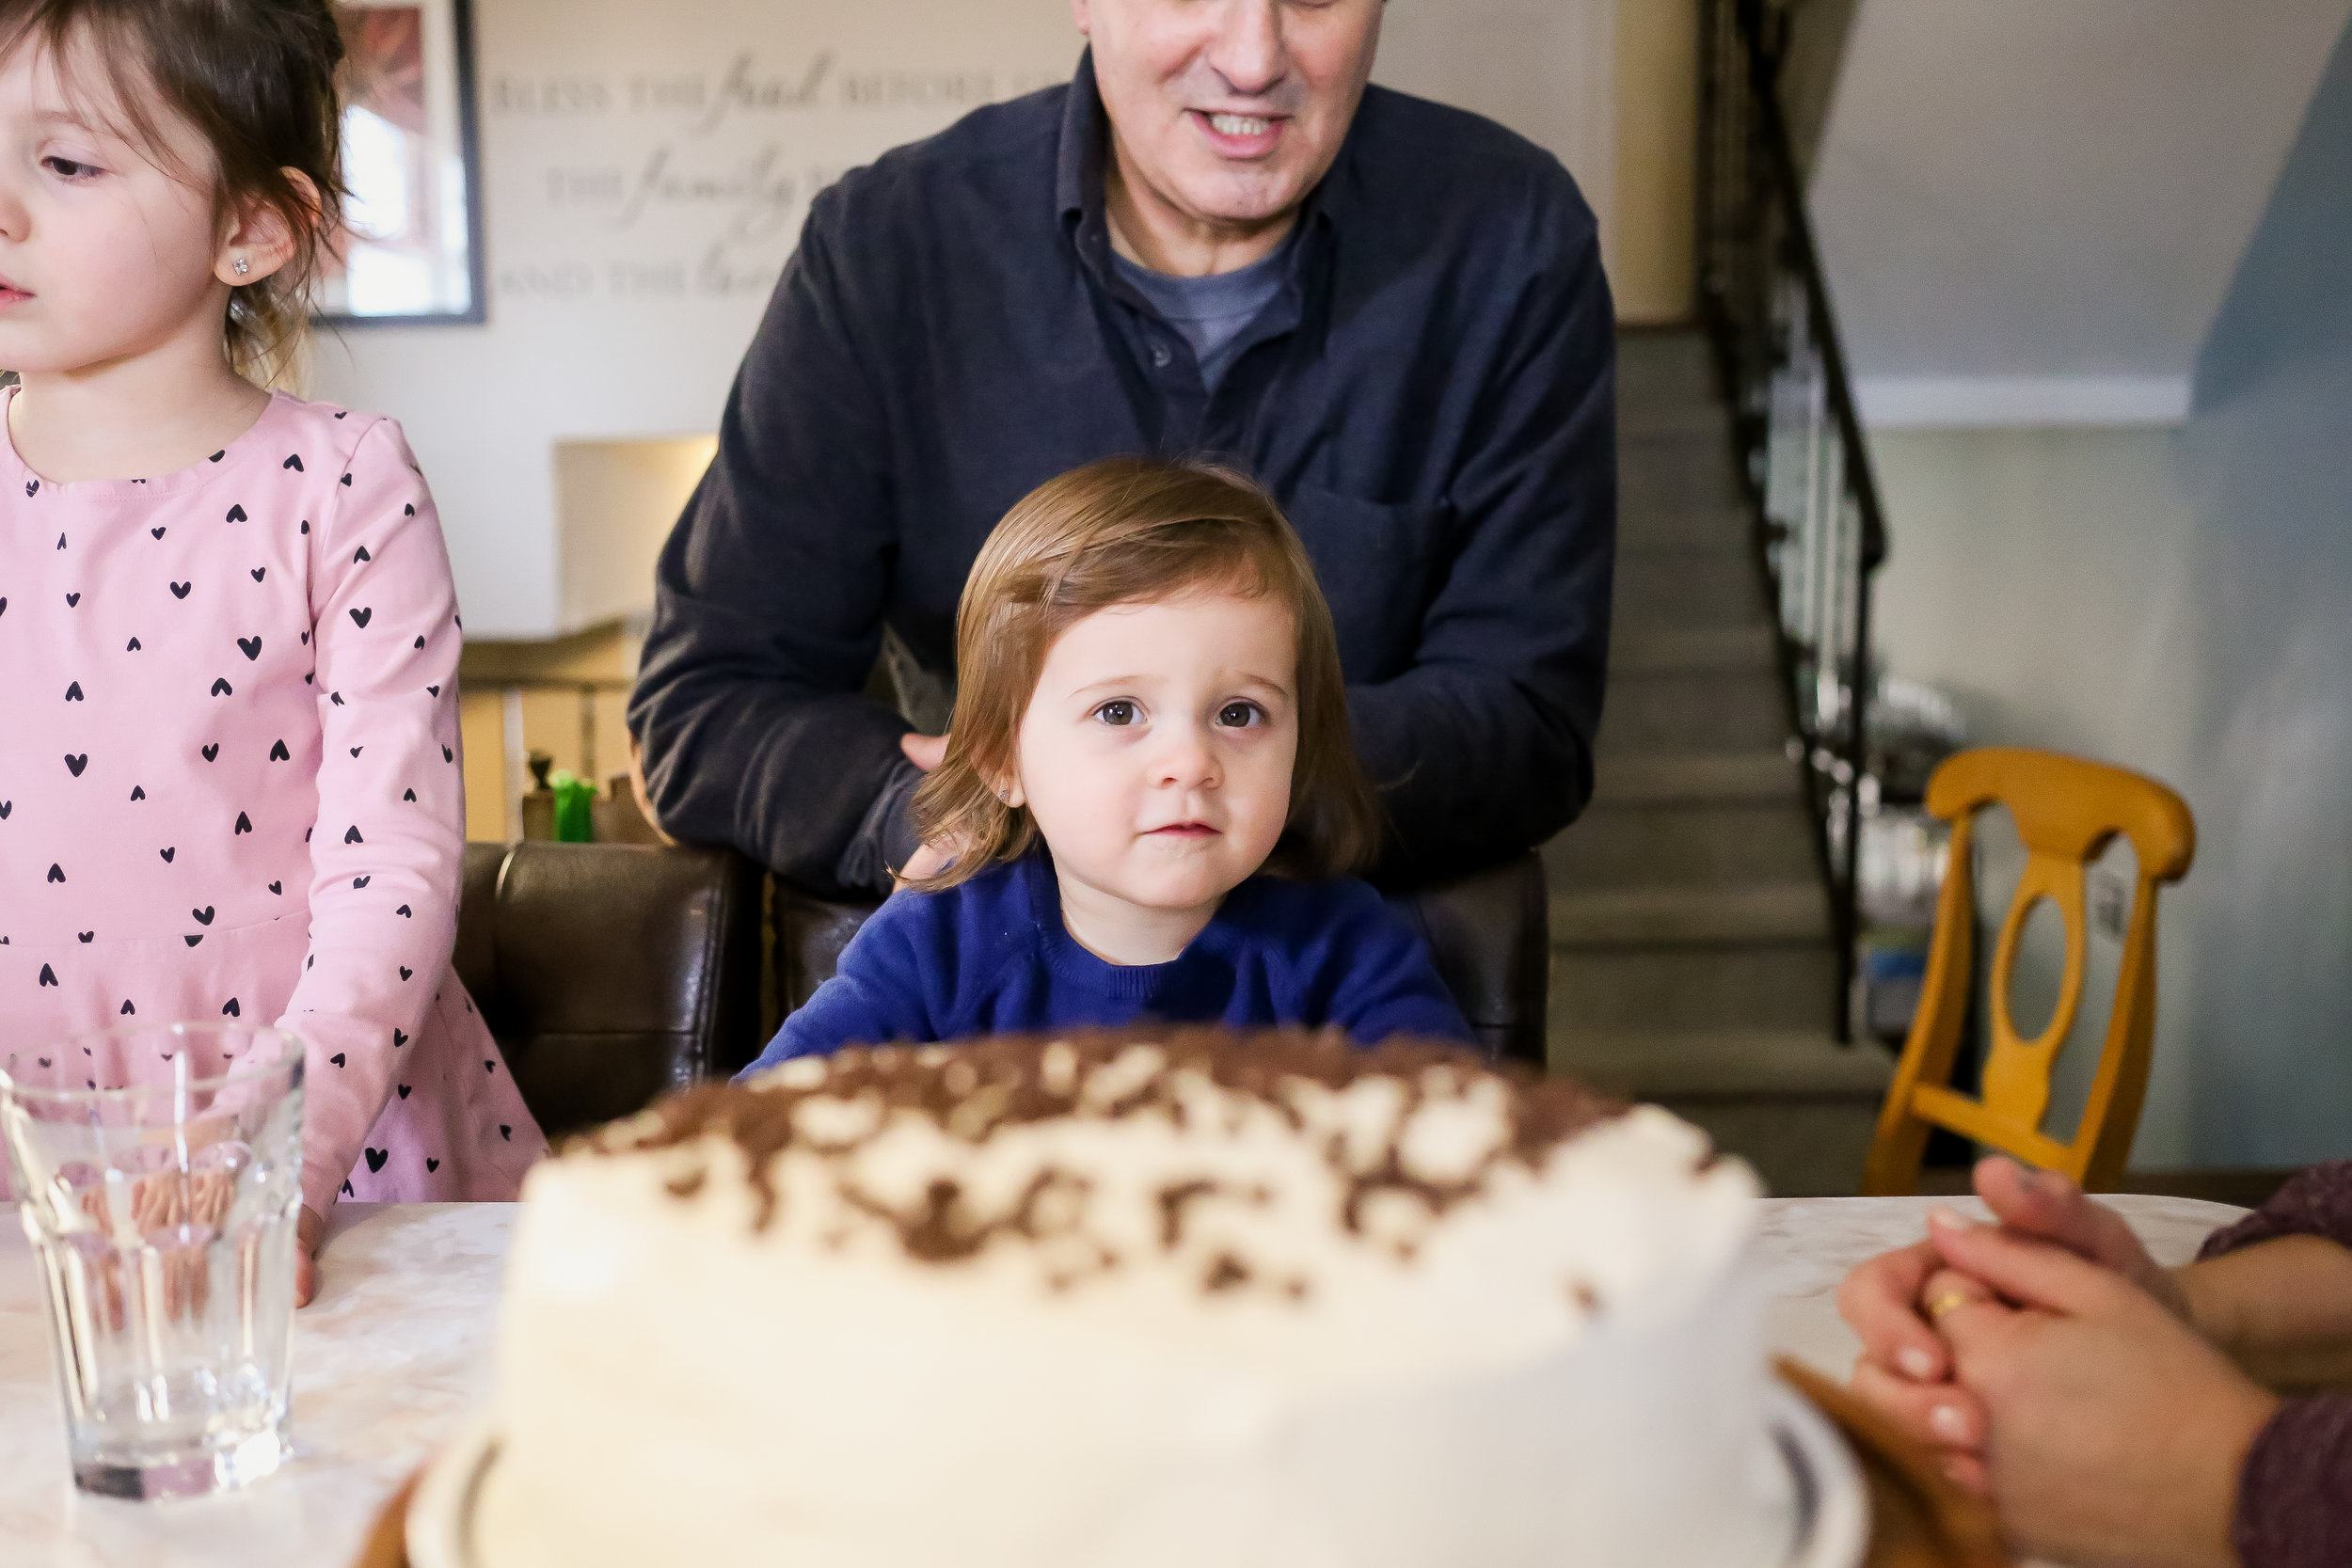 Two year old birthday party, special occasion family photography in Pennsylvania.